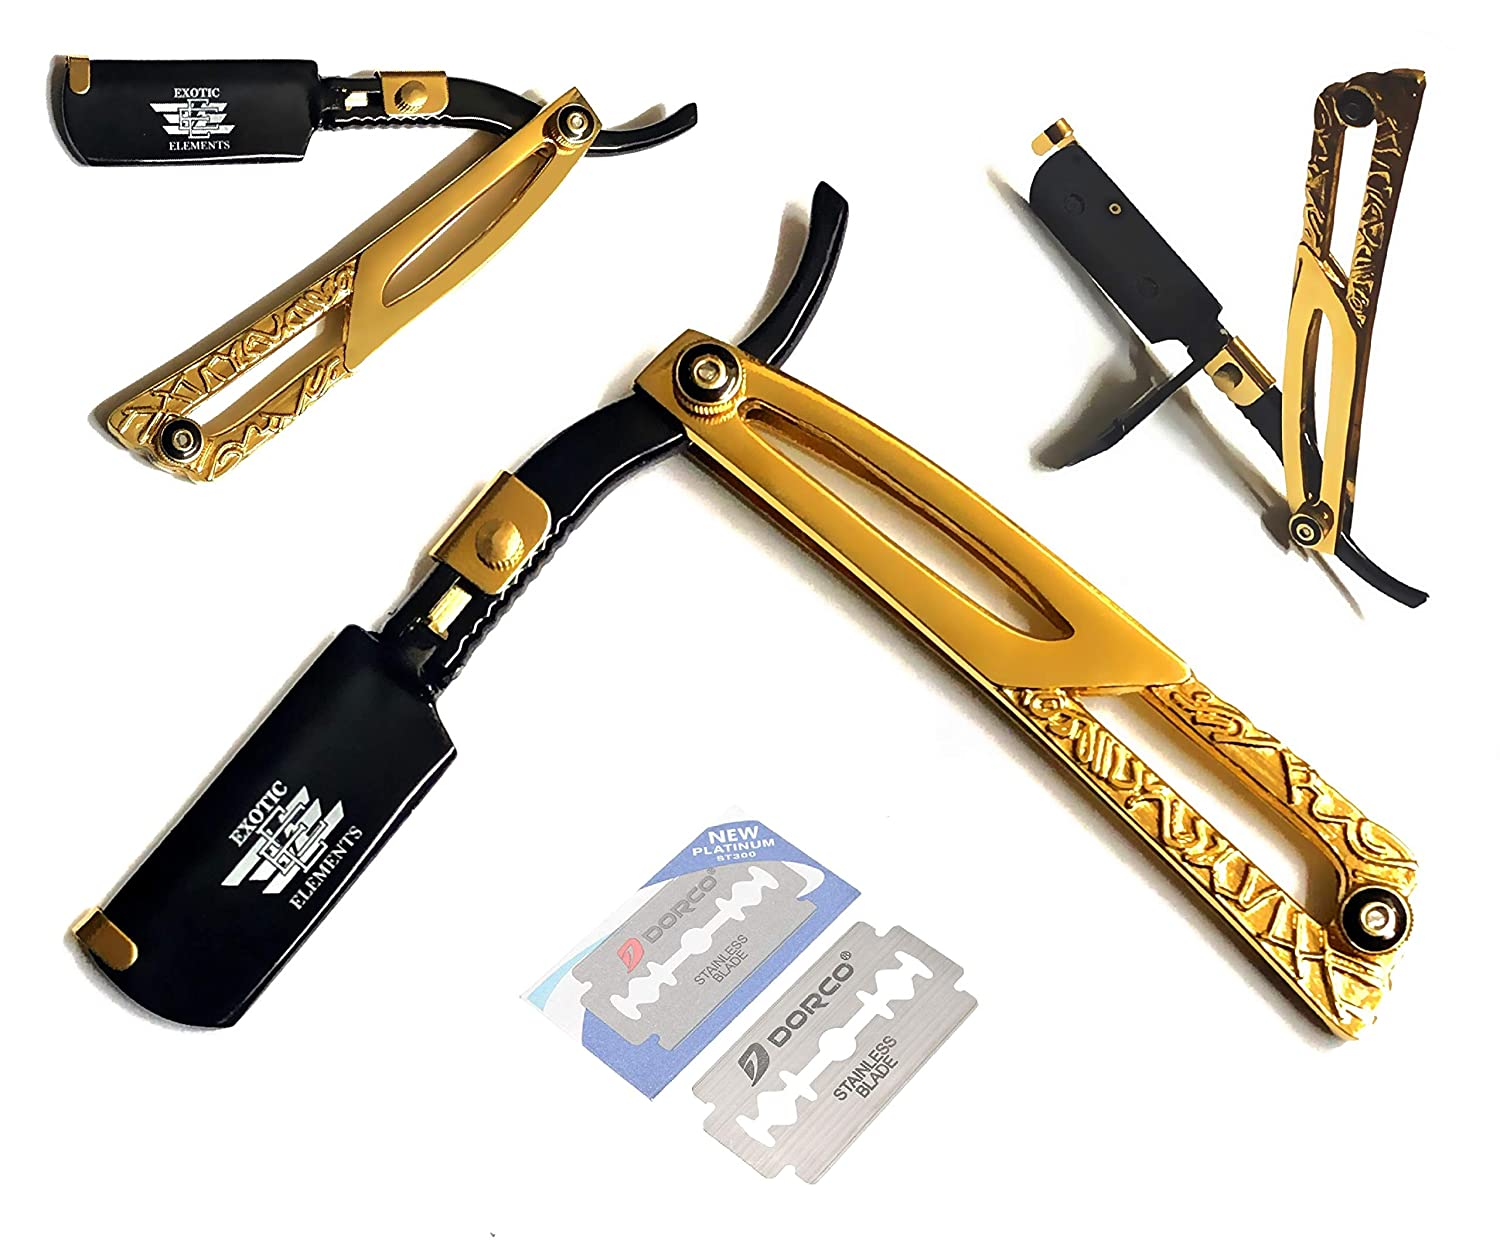 Gold and Black Limited Edition Exclusive Professional Barber Straight Edge Razor - Beauty Salon Beauty Parlor Quality Cut Throat Shavette - All Purpose Shaving Razor